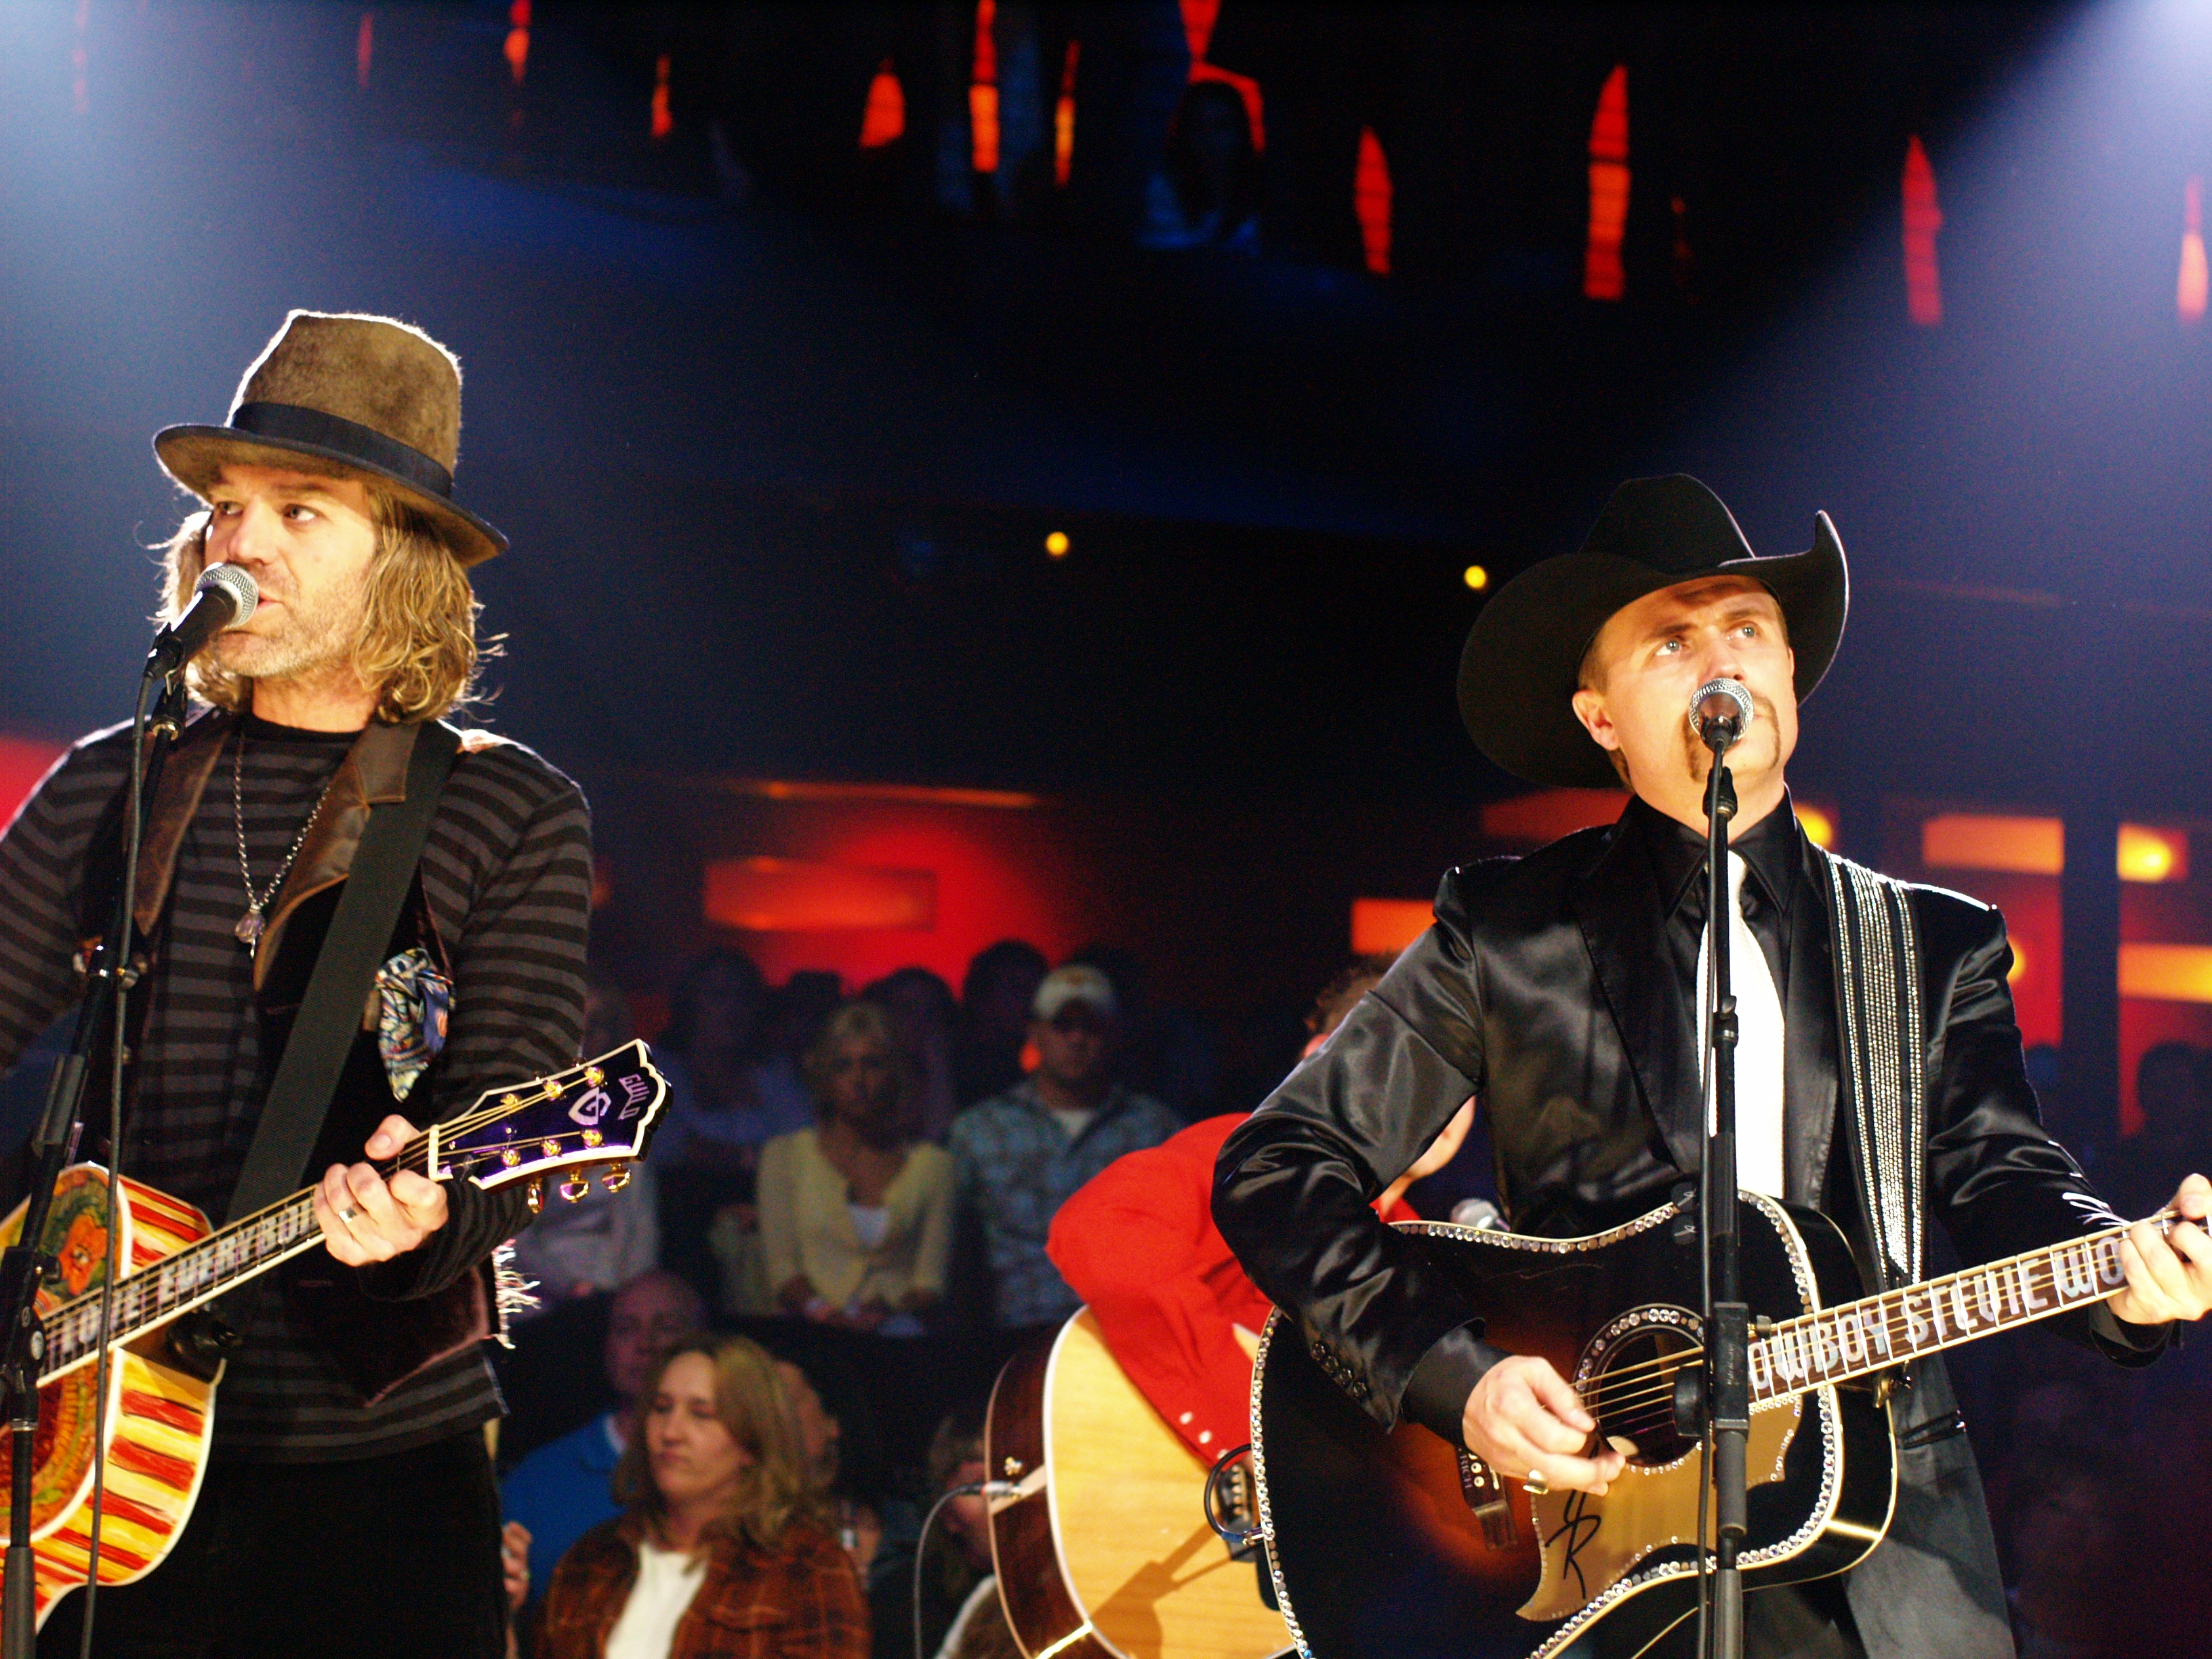 Music Videos by Big & Rich